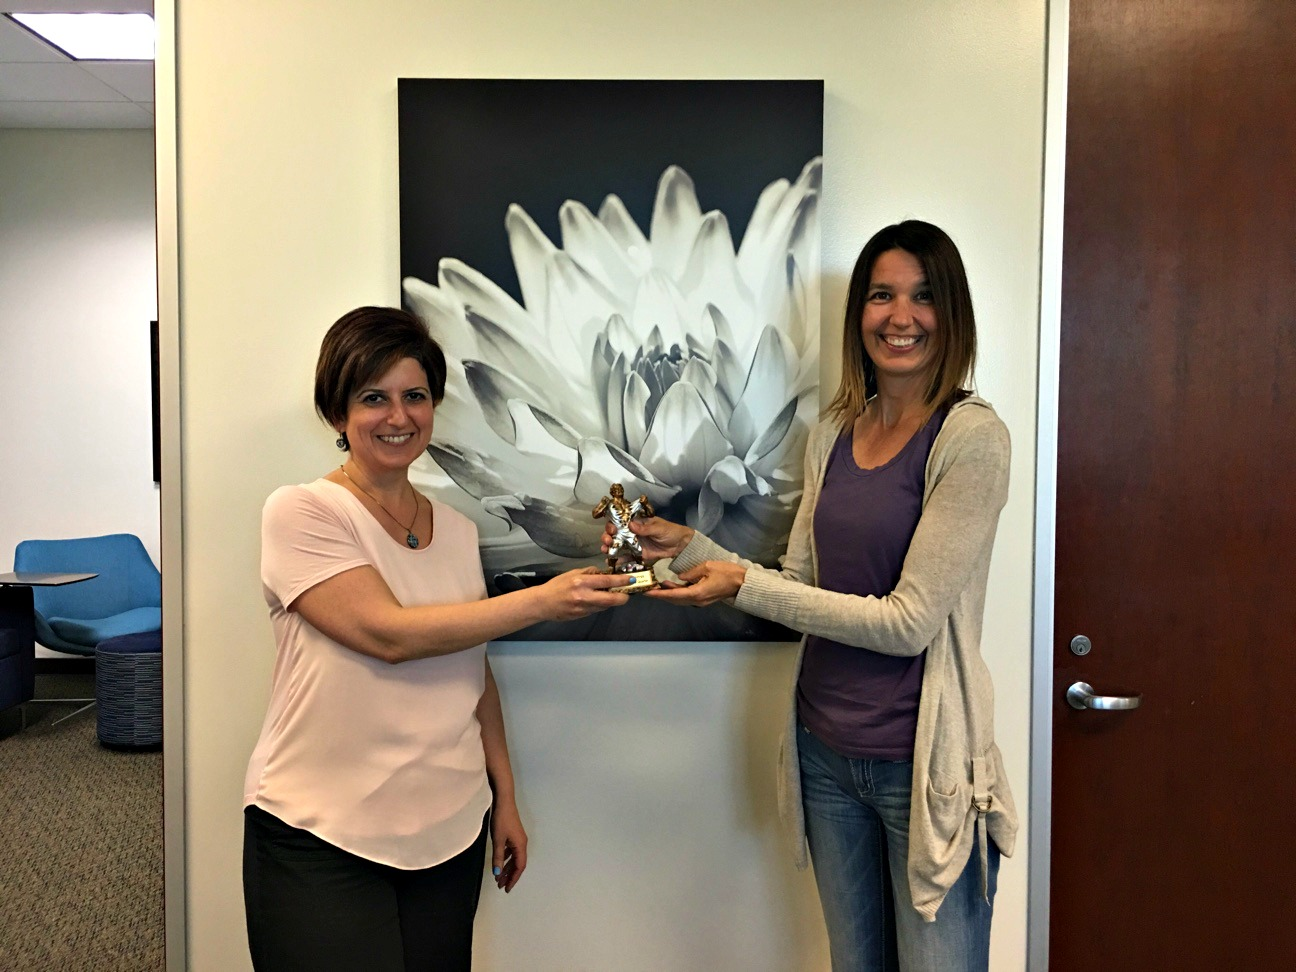 Arin Simonyan, HR/Payroll Software Support Lead and recipient of the Escape Employee of the Second Quarter award, passing the baton to Robin Fiske, Technical Support Analyst and recipient of the Escape Employee of the Third Quarter award.